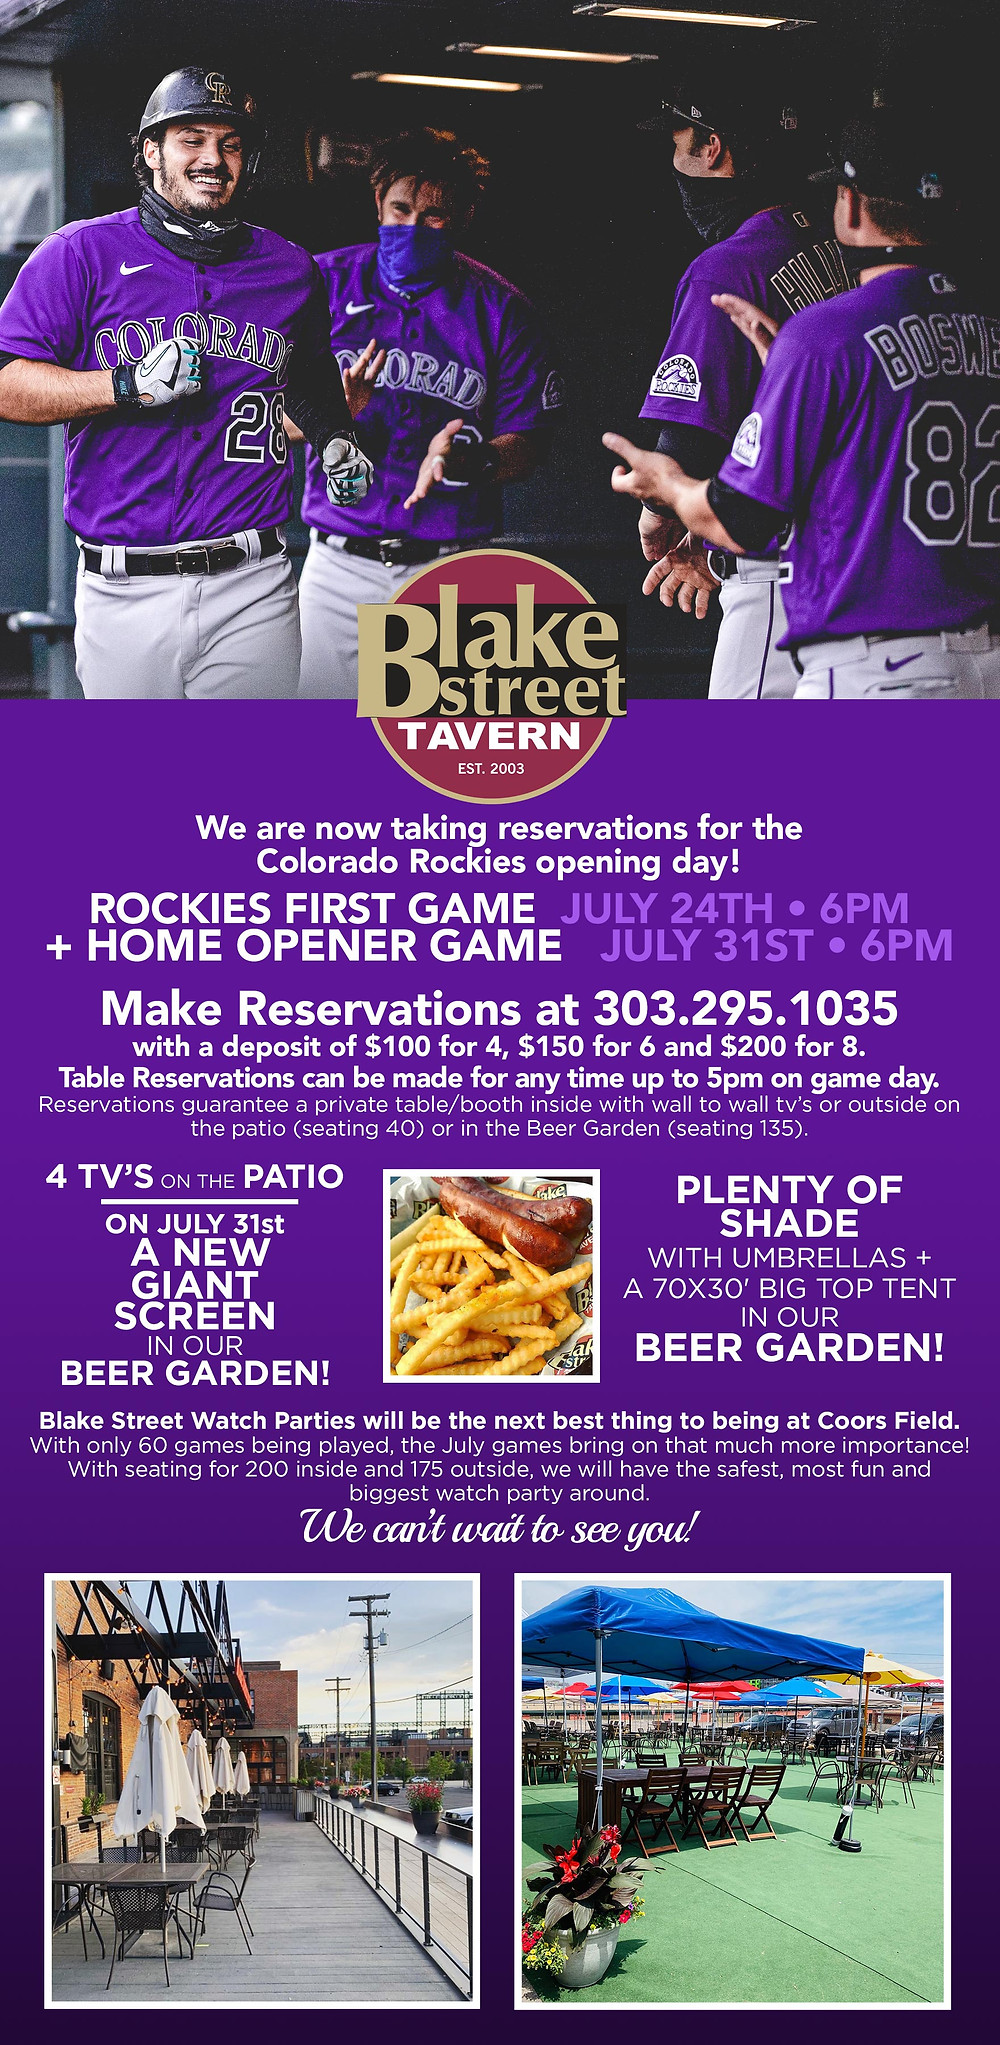 Watch the Rockies Games at Blake Street Tavern in downtown Denver and RiNo neighborhoods, just one block north of Coors Field!